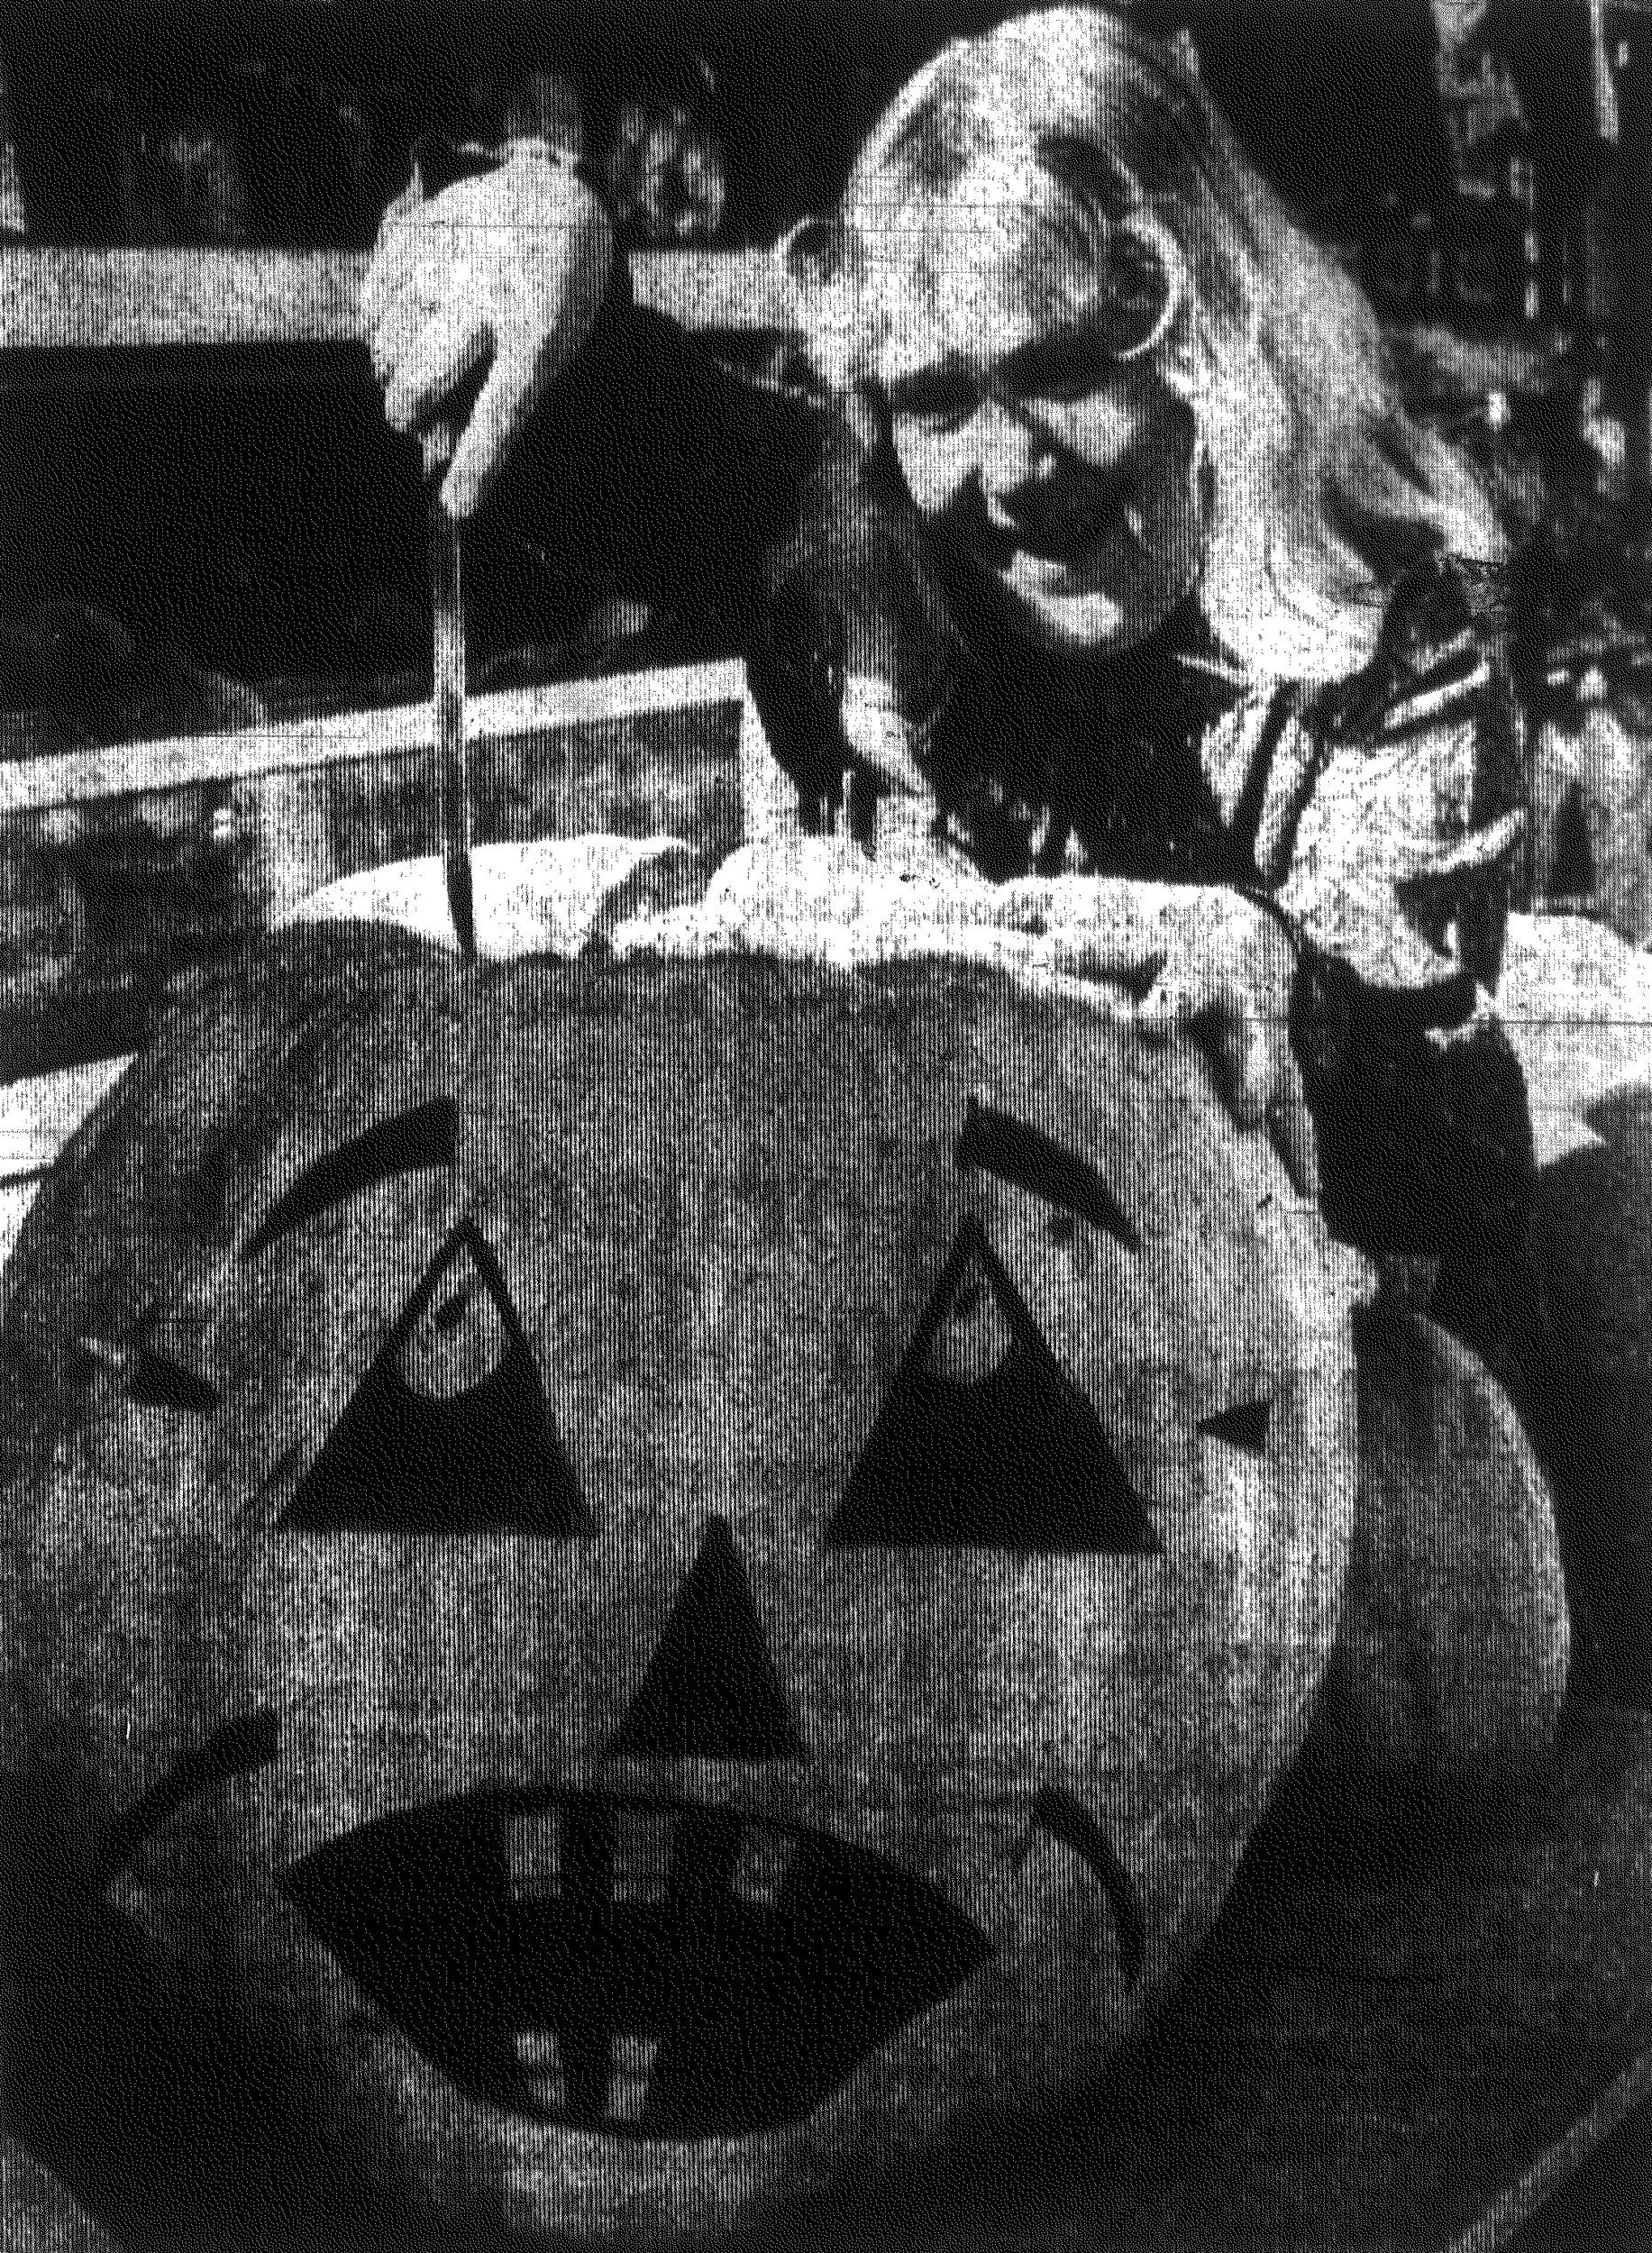 1967 - Carving a pumpkin is a big project for 10-year-old Debbie Prince, who won this 100-pound giant in a drawing at Tom's (Bradley) Fruit Stand on North Main Street. Baking pies looms even larger on the ghost-filled horizon for her mother, Mrs. John Prince, who says she'll make the first two after the light fades from eerie jack-o'-lantern eyes tonight.